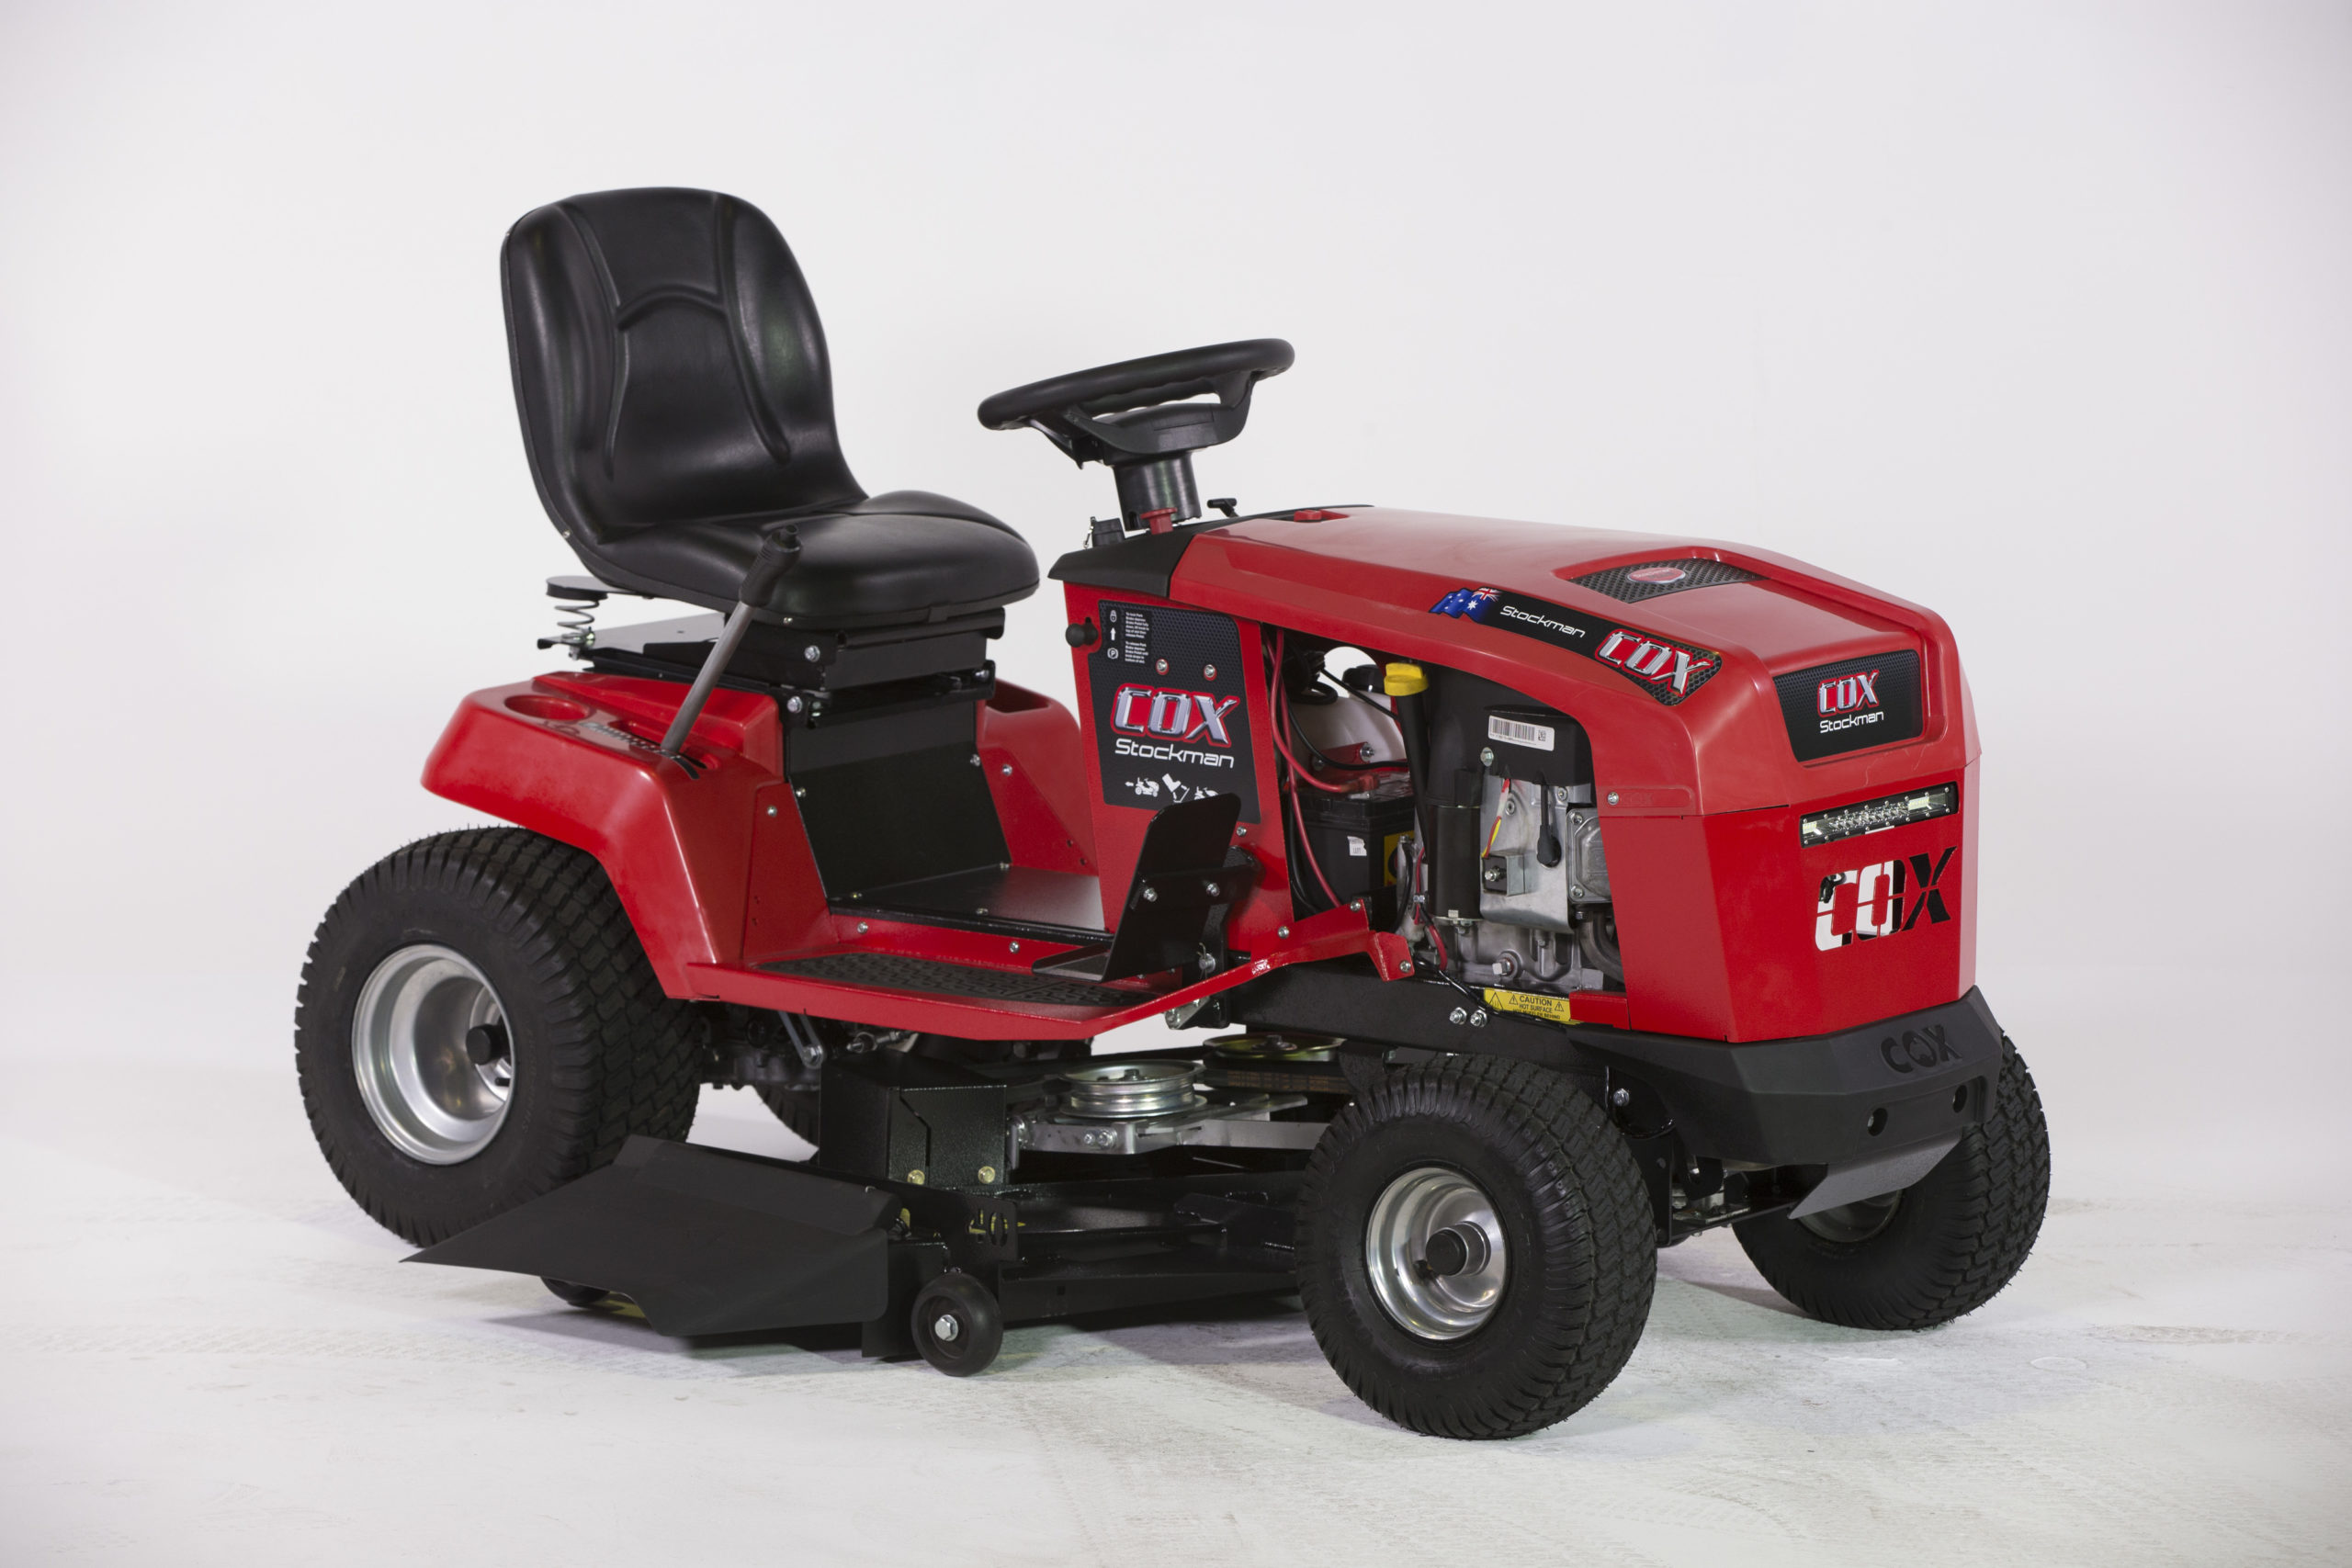 Image of the Cox Stockman 15B32 Ride on Lawn Mower